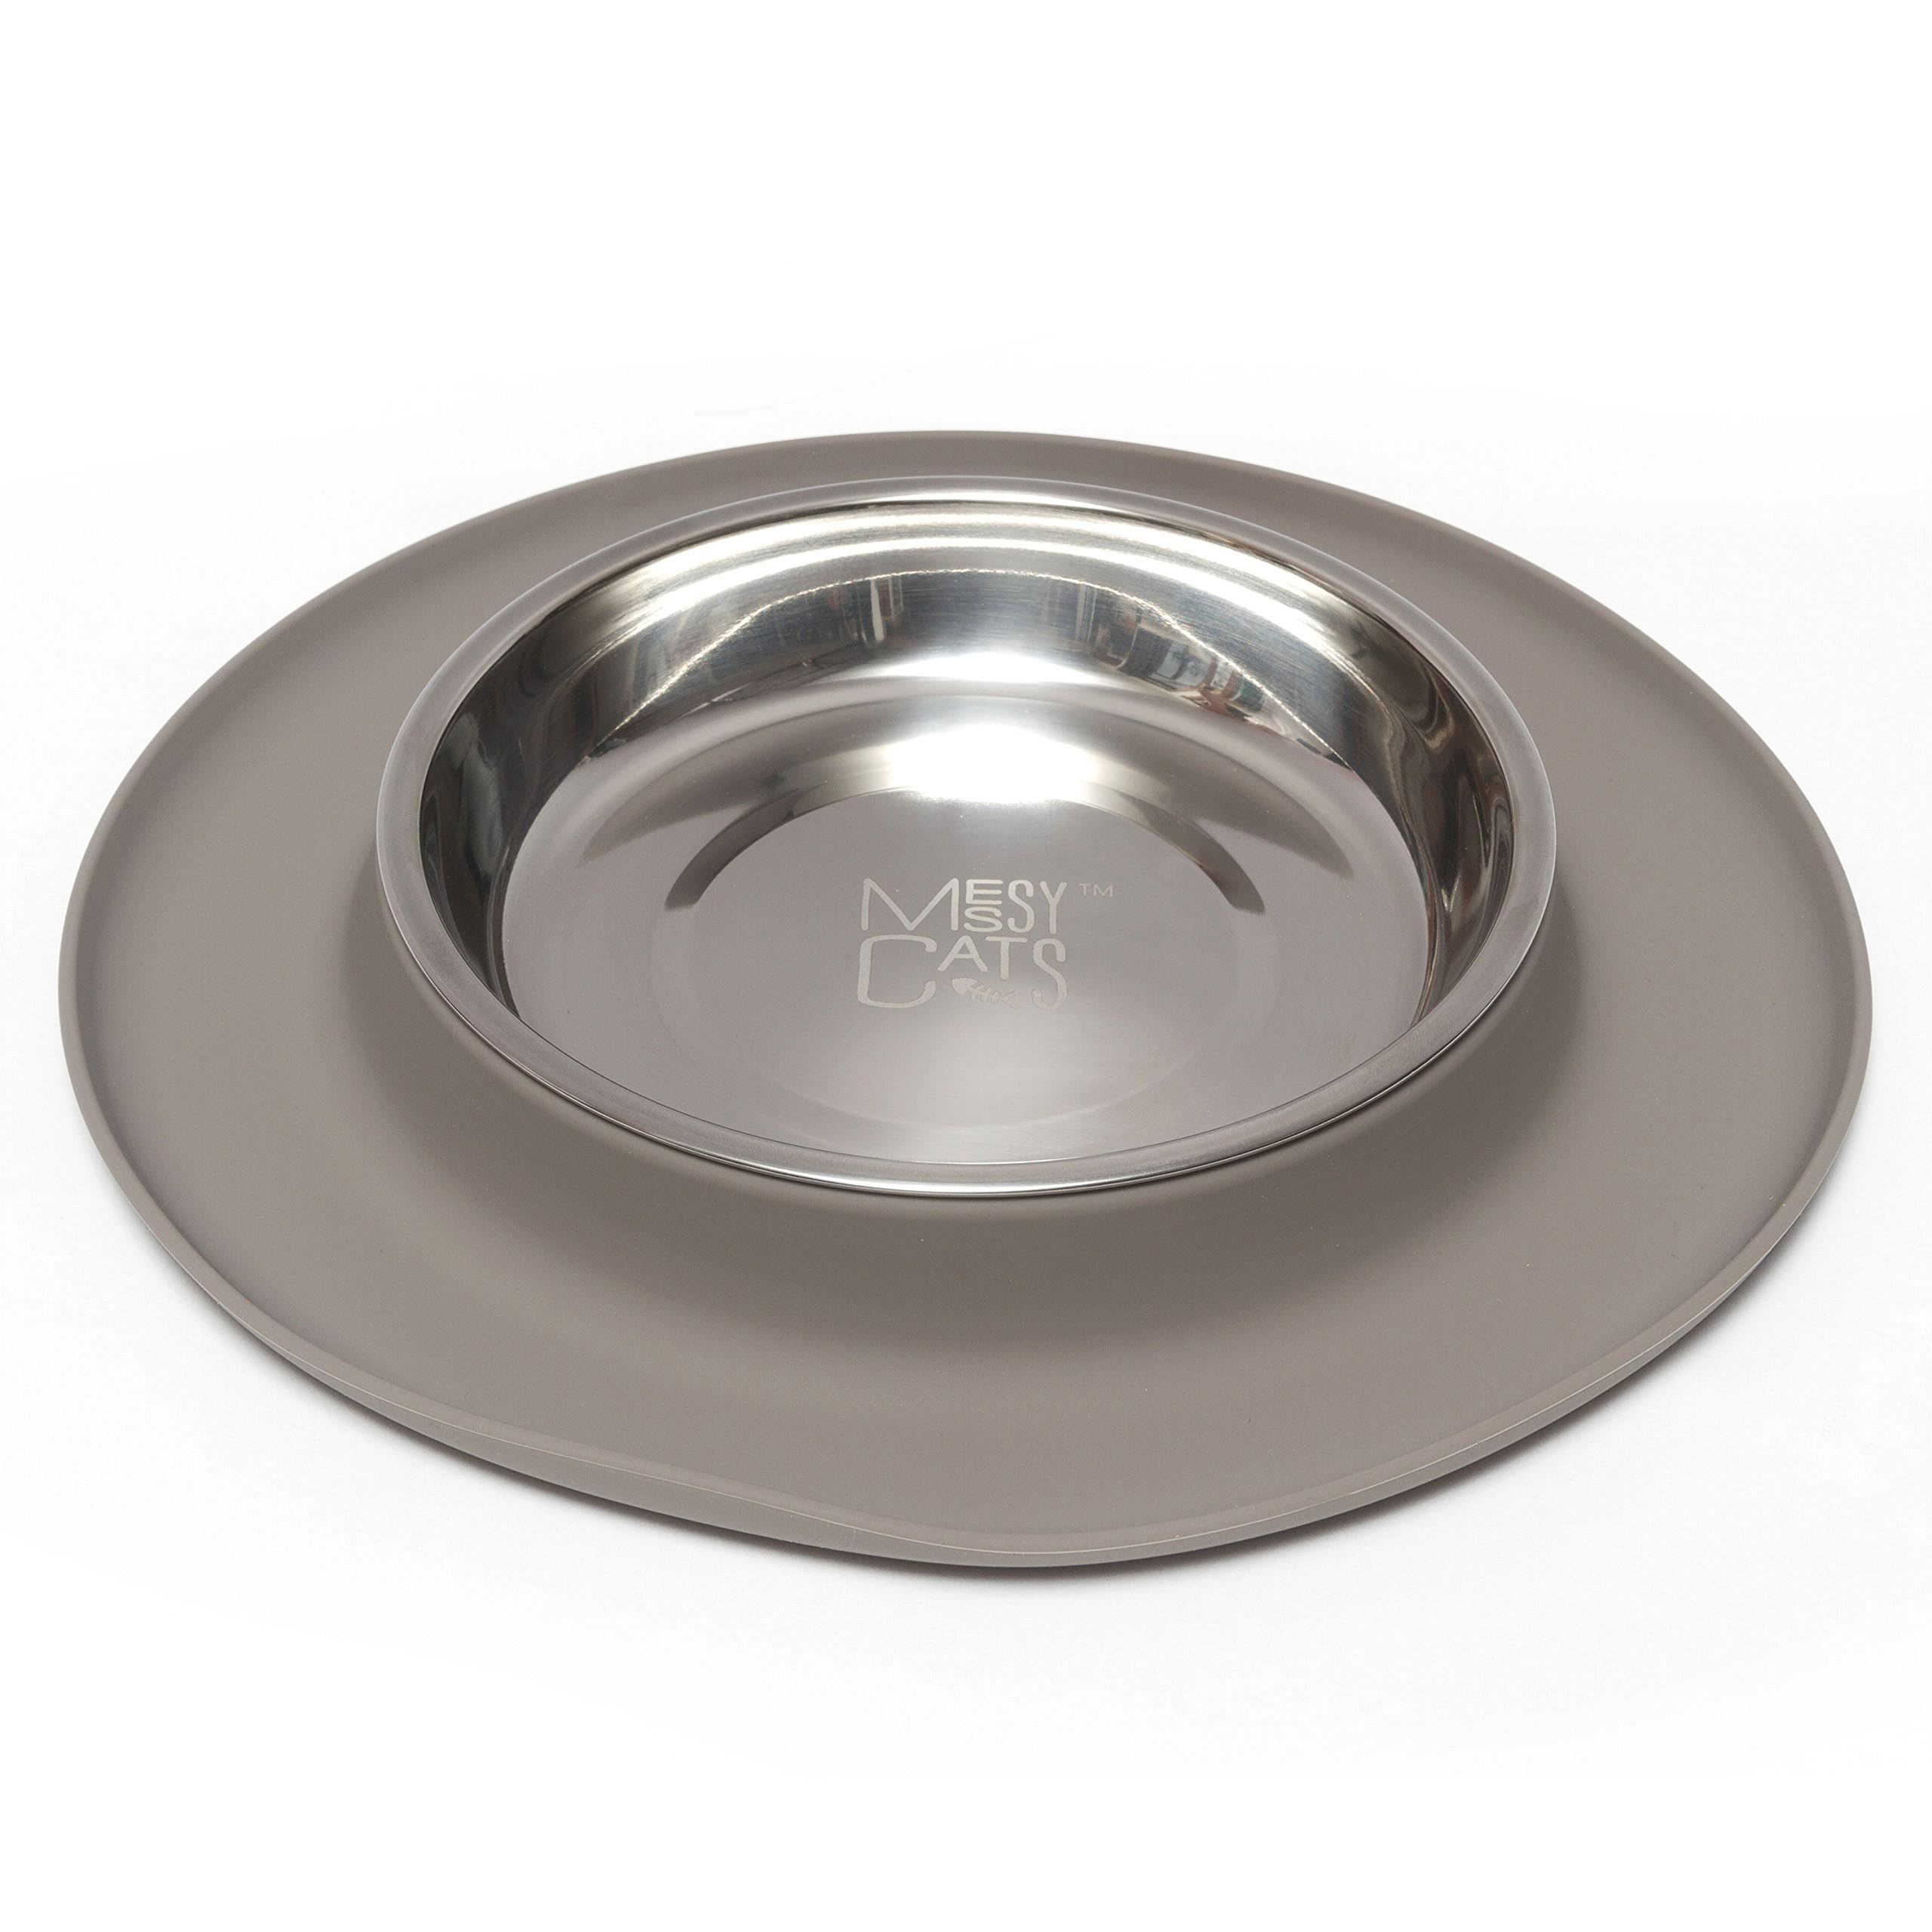 Messy Cats Stainless Steel Cat Feeder - with Non-slip Silicone Base, Gray